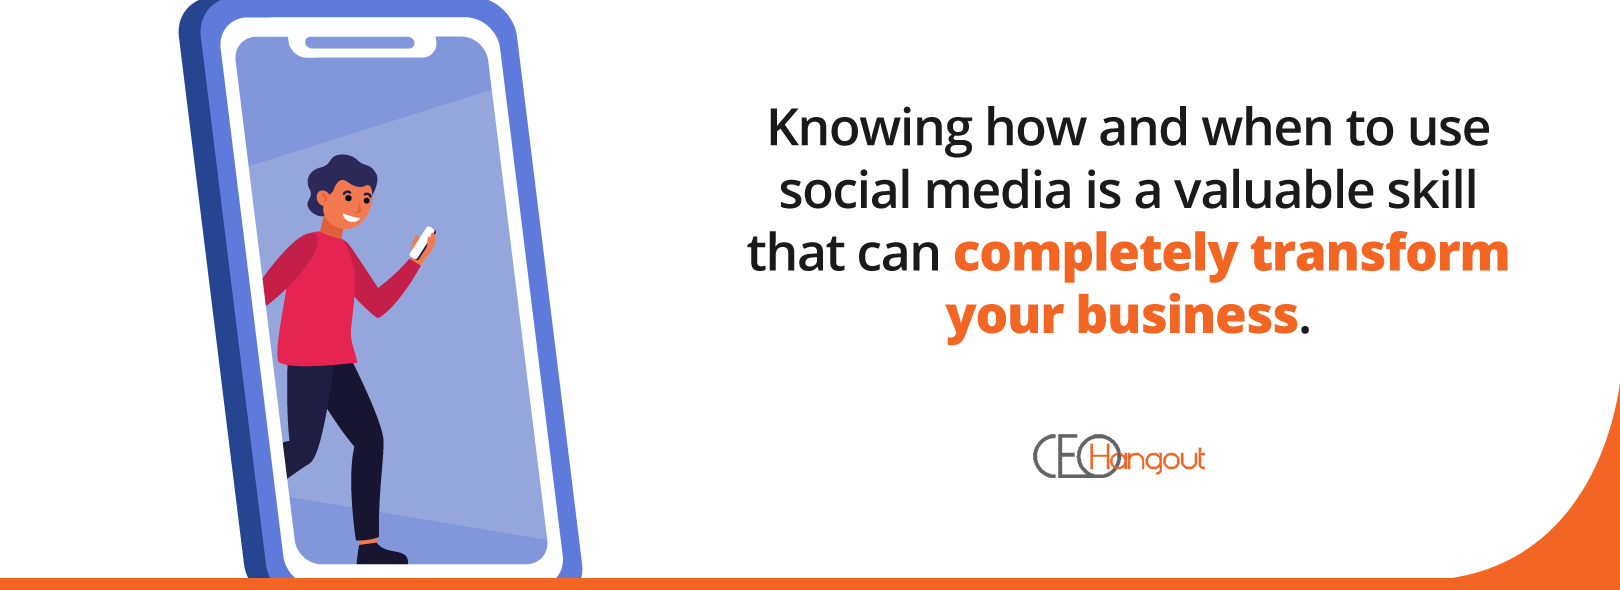 knowing how and when to use social media (1)